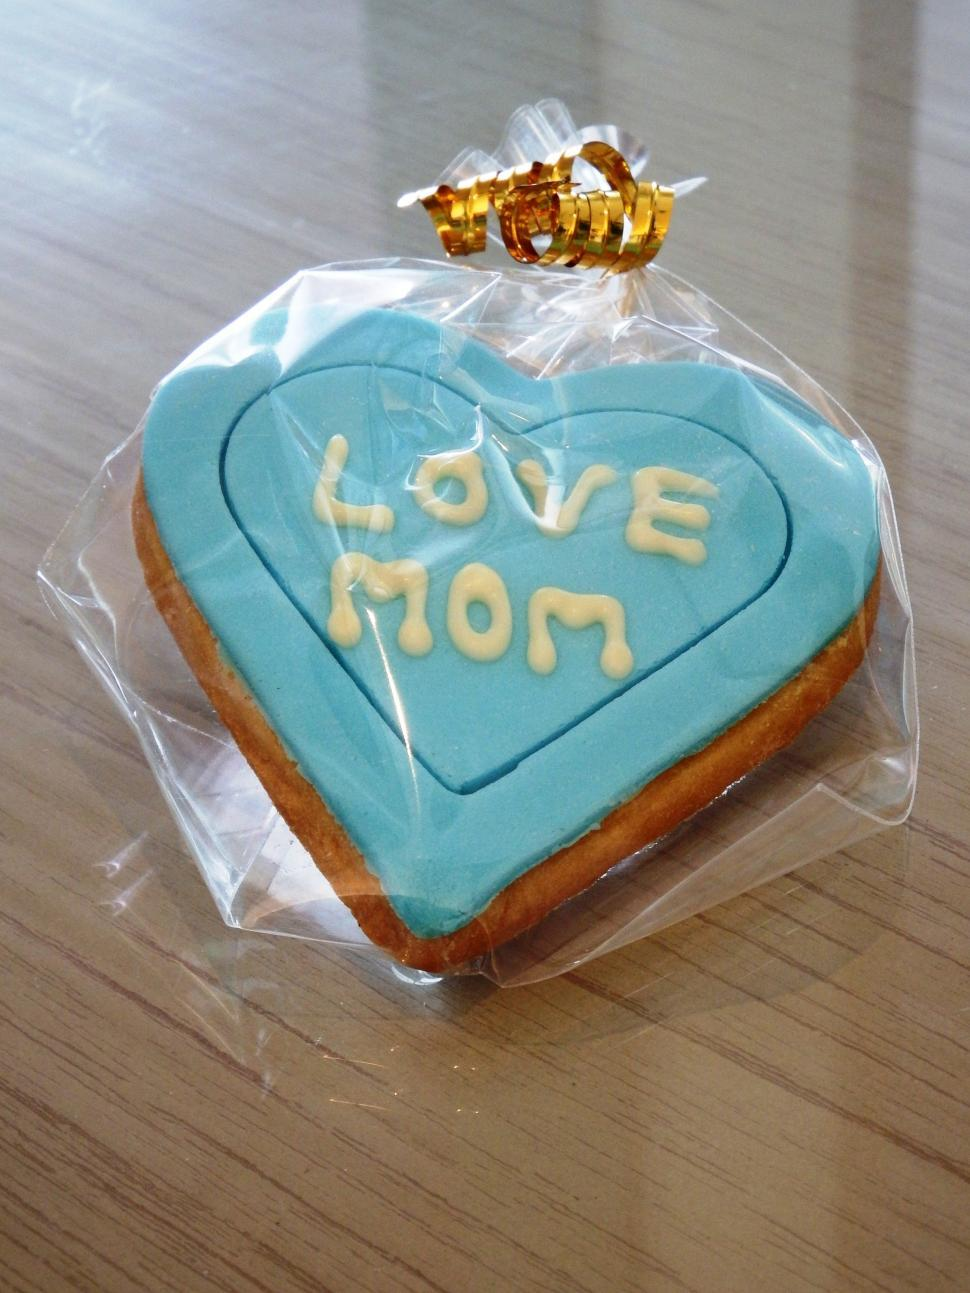 Download Free Stock HD Photo of Love Mom Heart Cookie  Online